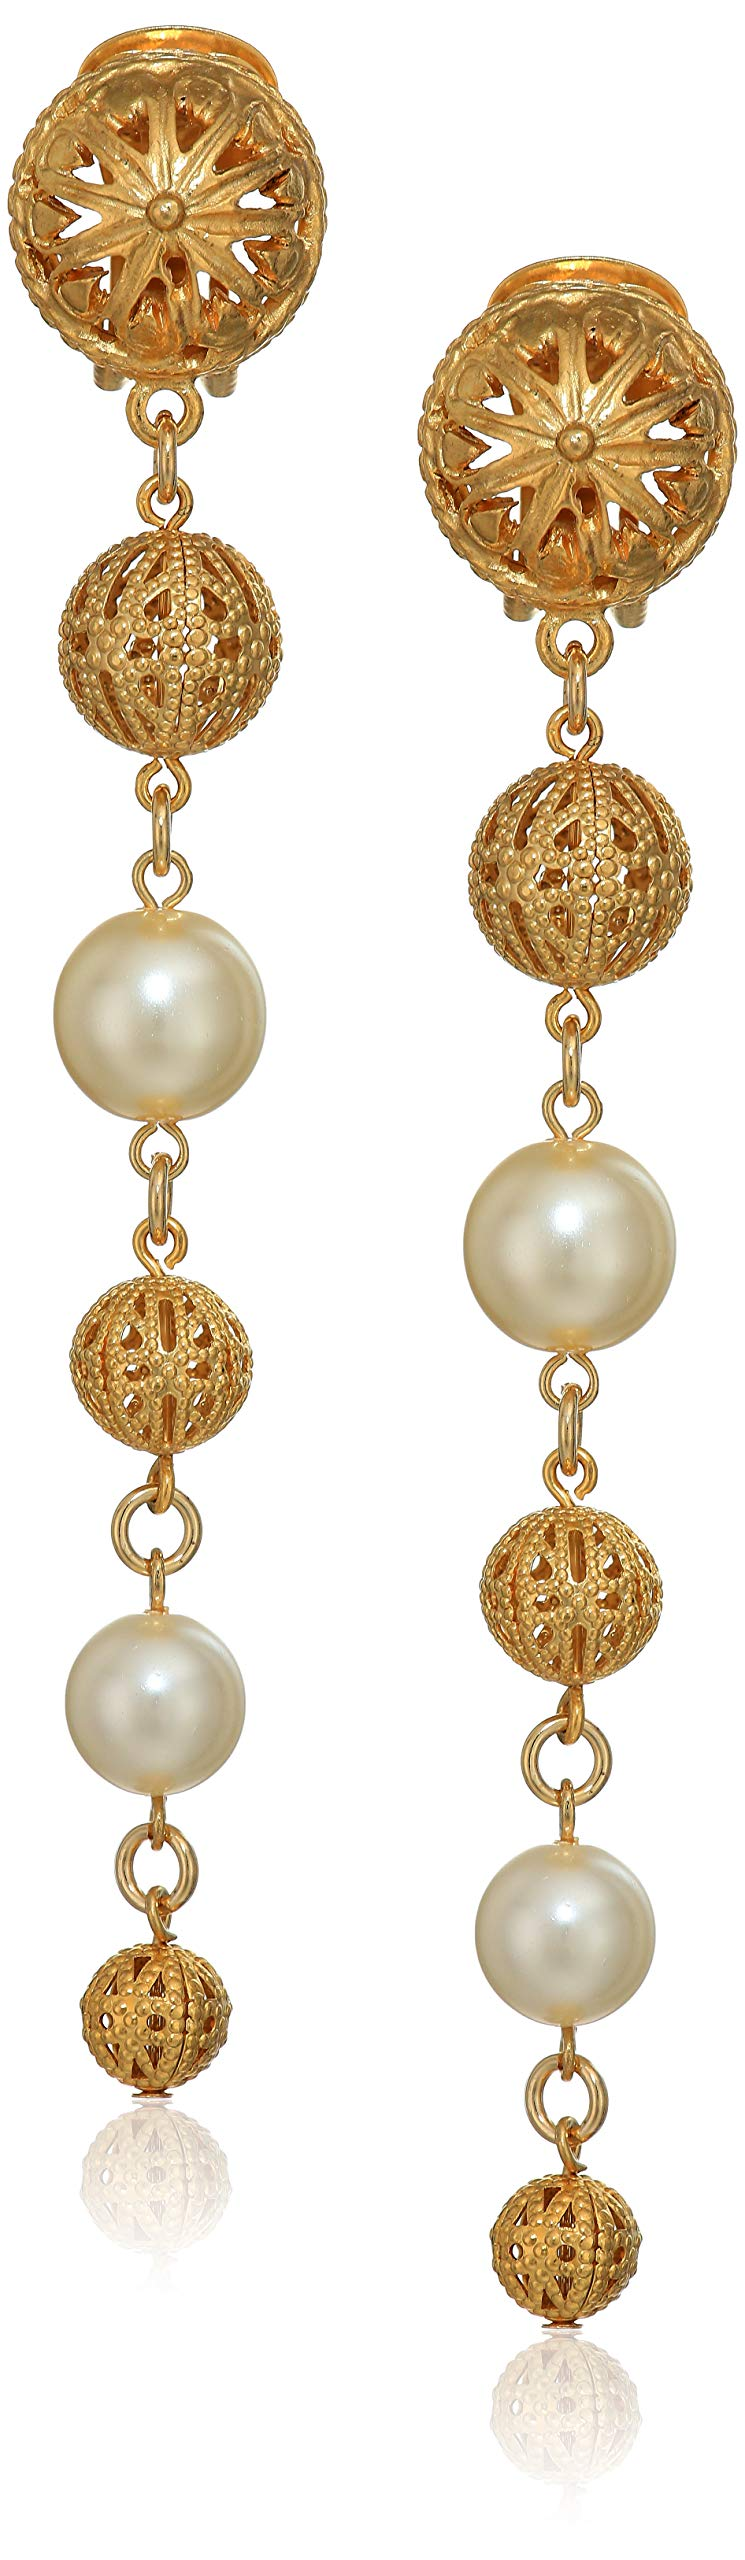 Ben-Amun Jewelry Gold Ball and Pearl Linear Drop Clip On Earrings